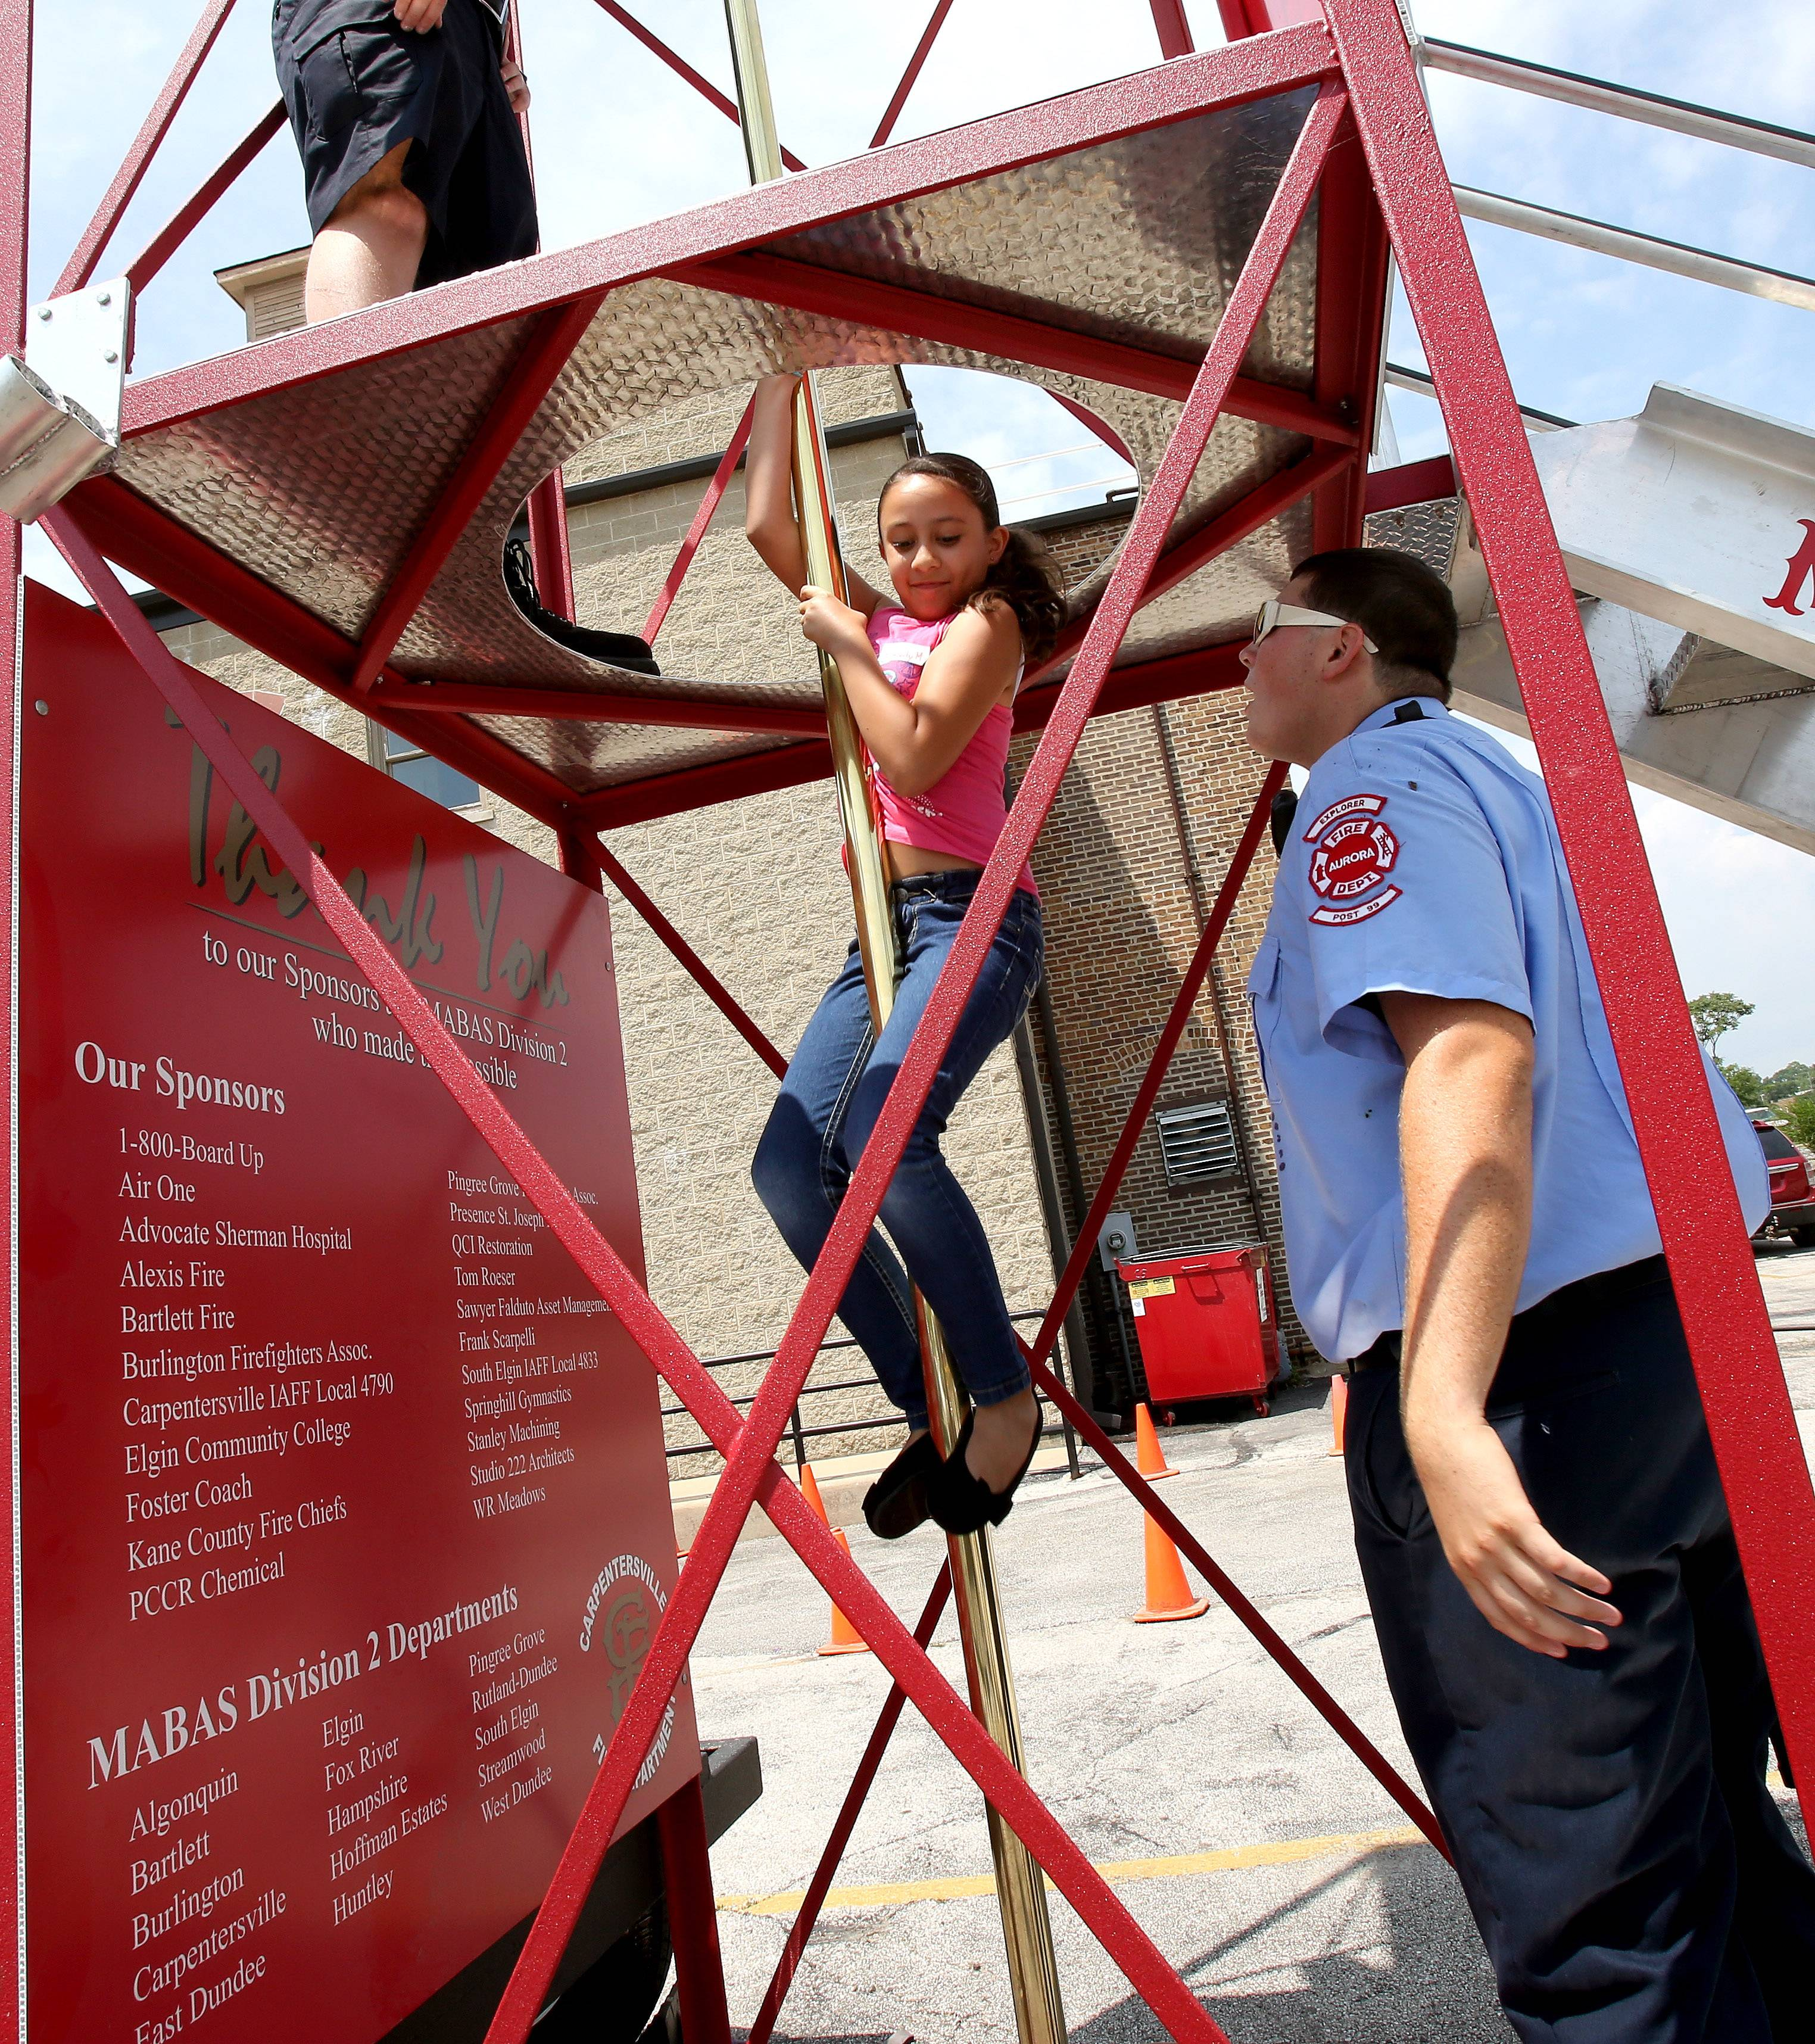 Trevor Weeks, a cadet Explorer with Aurora Post 221 and Post 99, supervises as Kimberly Menchaca, 9, makes her way down the fire pole during the Youth Firefighter Challenge summer camp at the Aurora Regional Fire Museum.